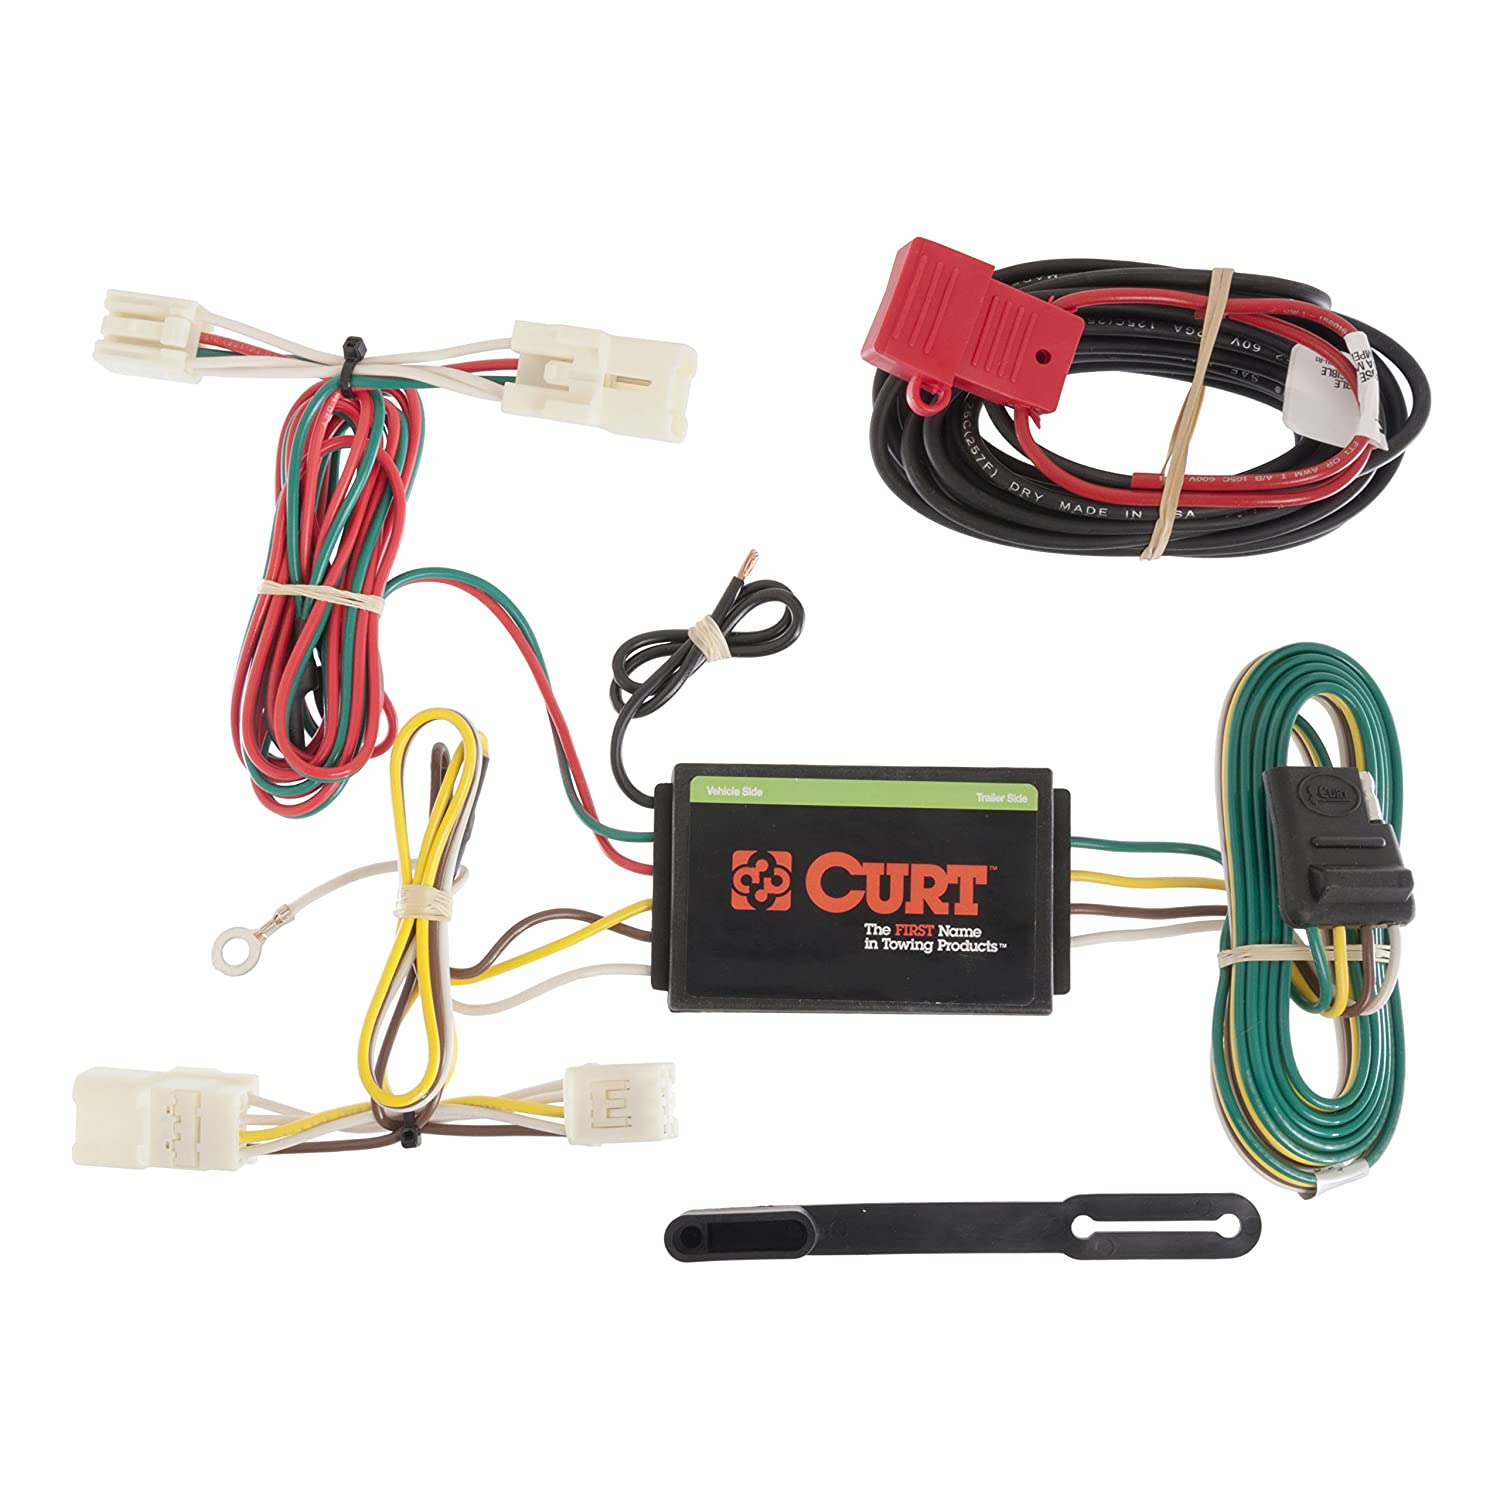 817l7jcQOtL._SL1500_ amazon com curt 56165 custom wiring harness automotive custom trailer wiring harness at bayanpartner.co